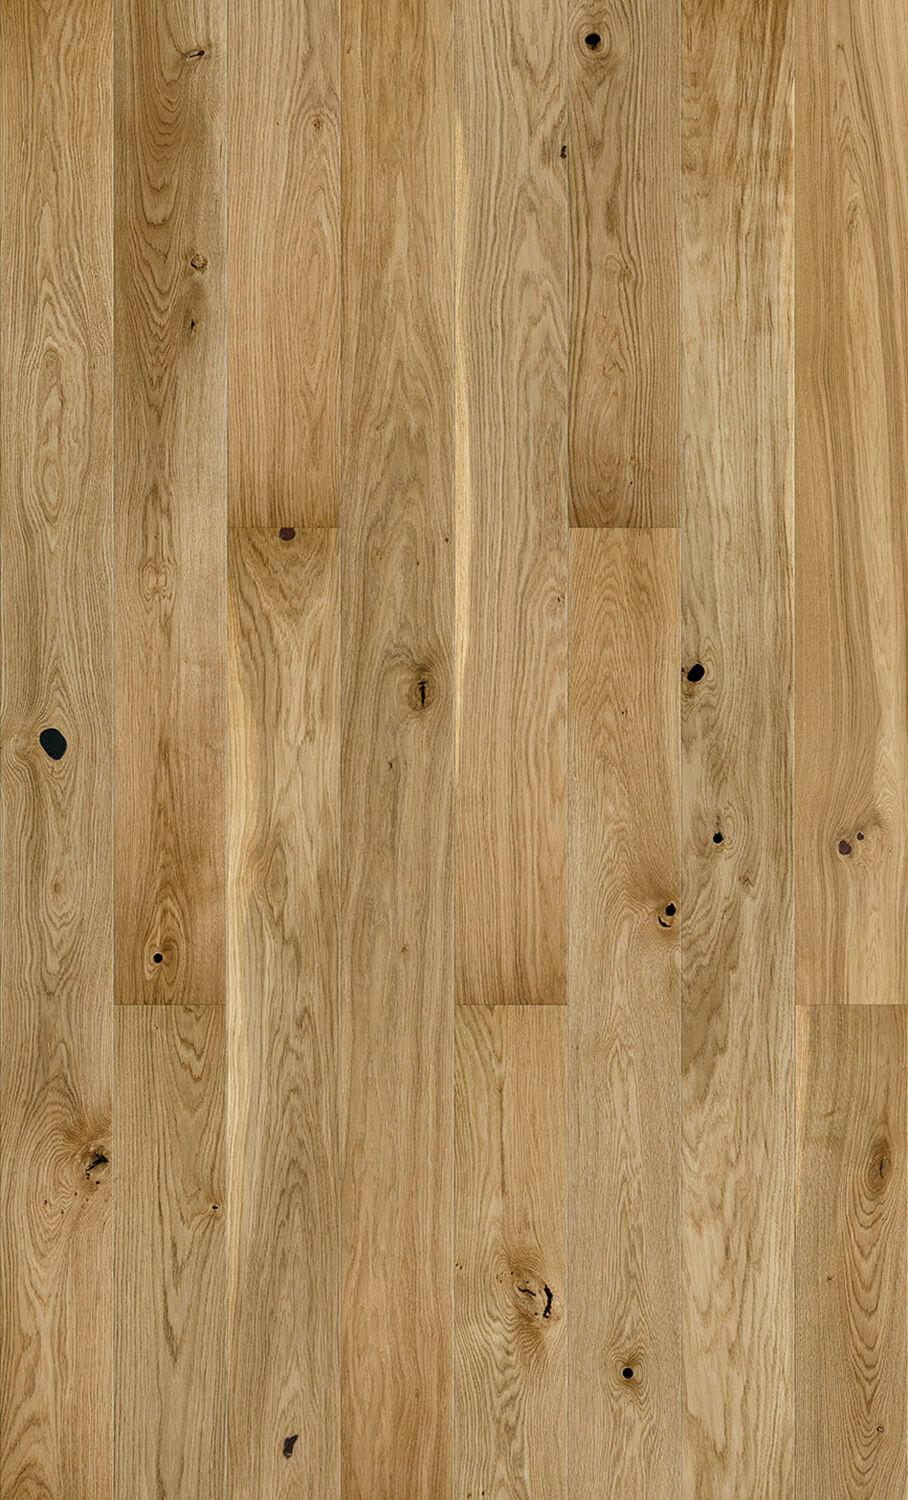 Baelea Holt Petherton Oak Brushed & UV Oiled 180mm Wide Engineered Wood Flooring